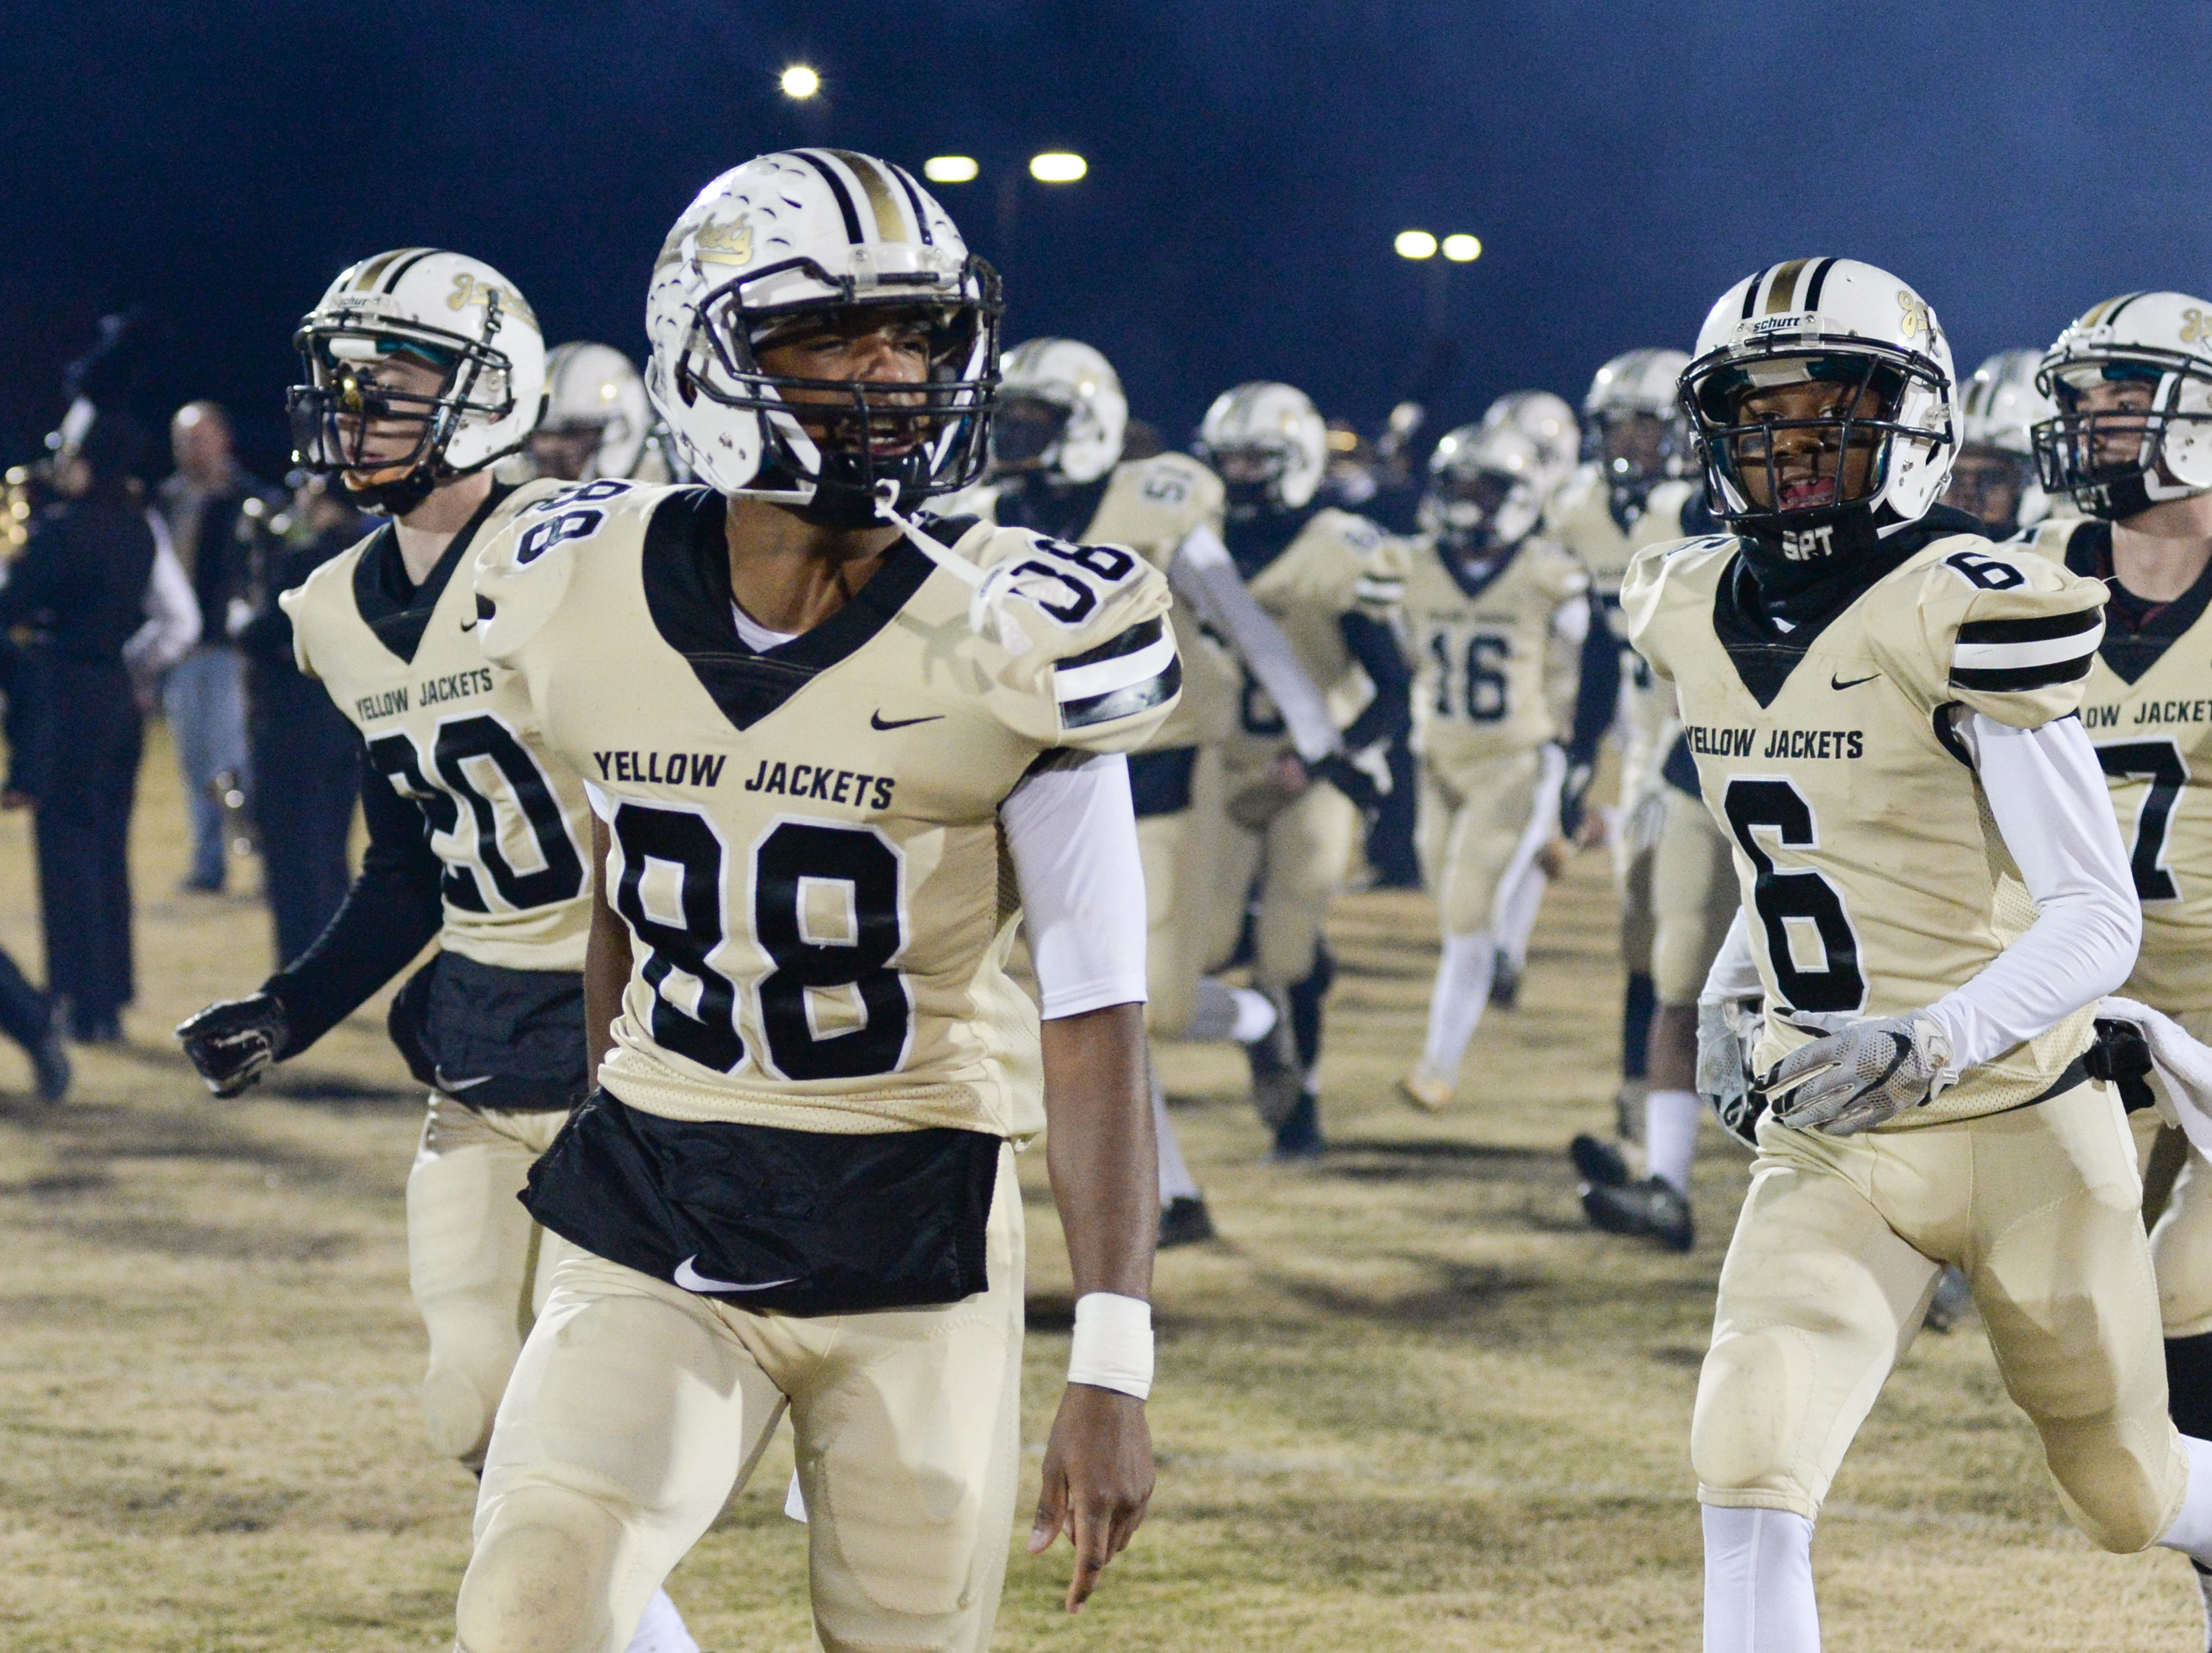 Springfield High School players take the field before playing against South Side High School at Springfield High School on Friday, Nov. 9.